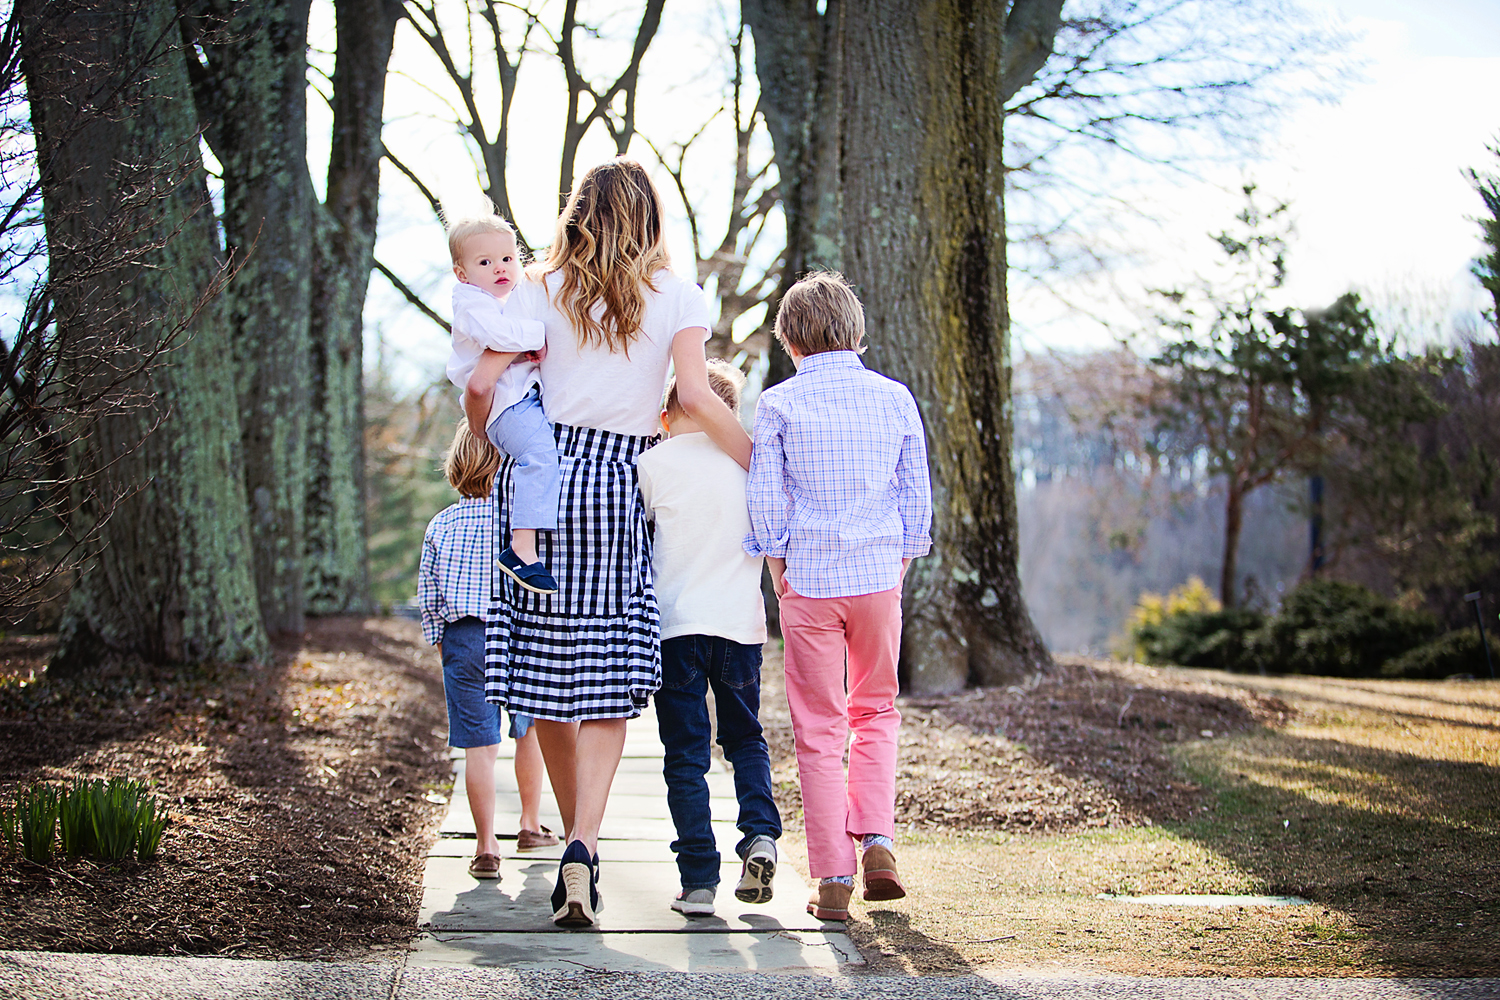 Spring and Easter Outfits for the Family - The Motherchic